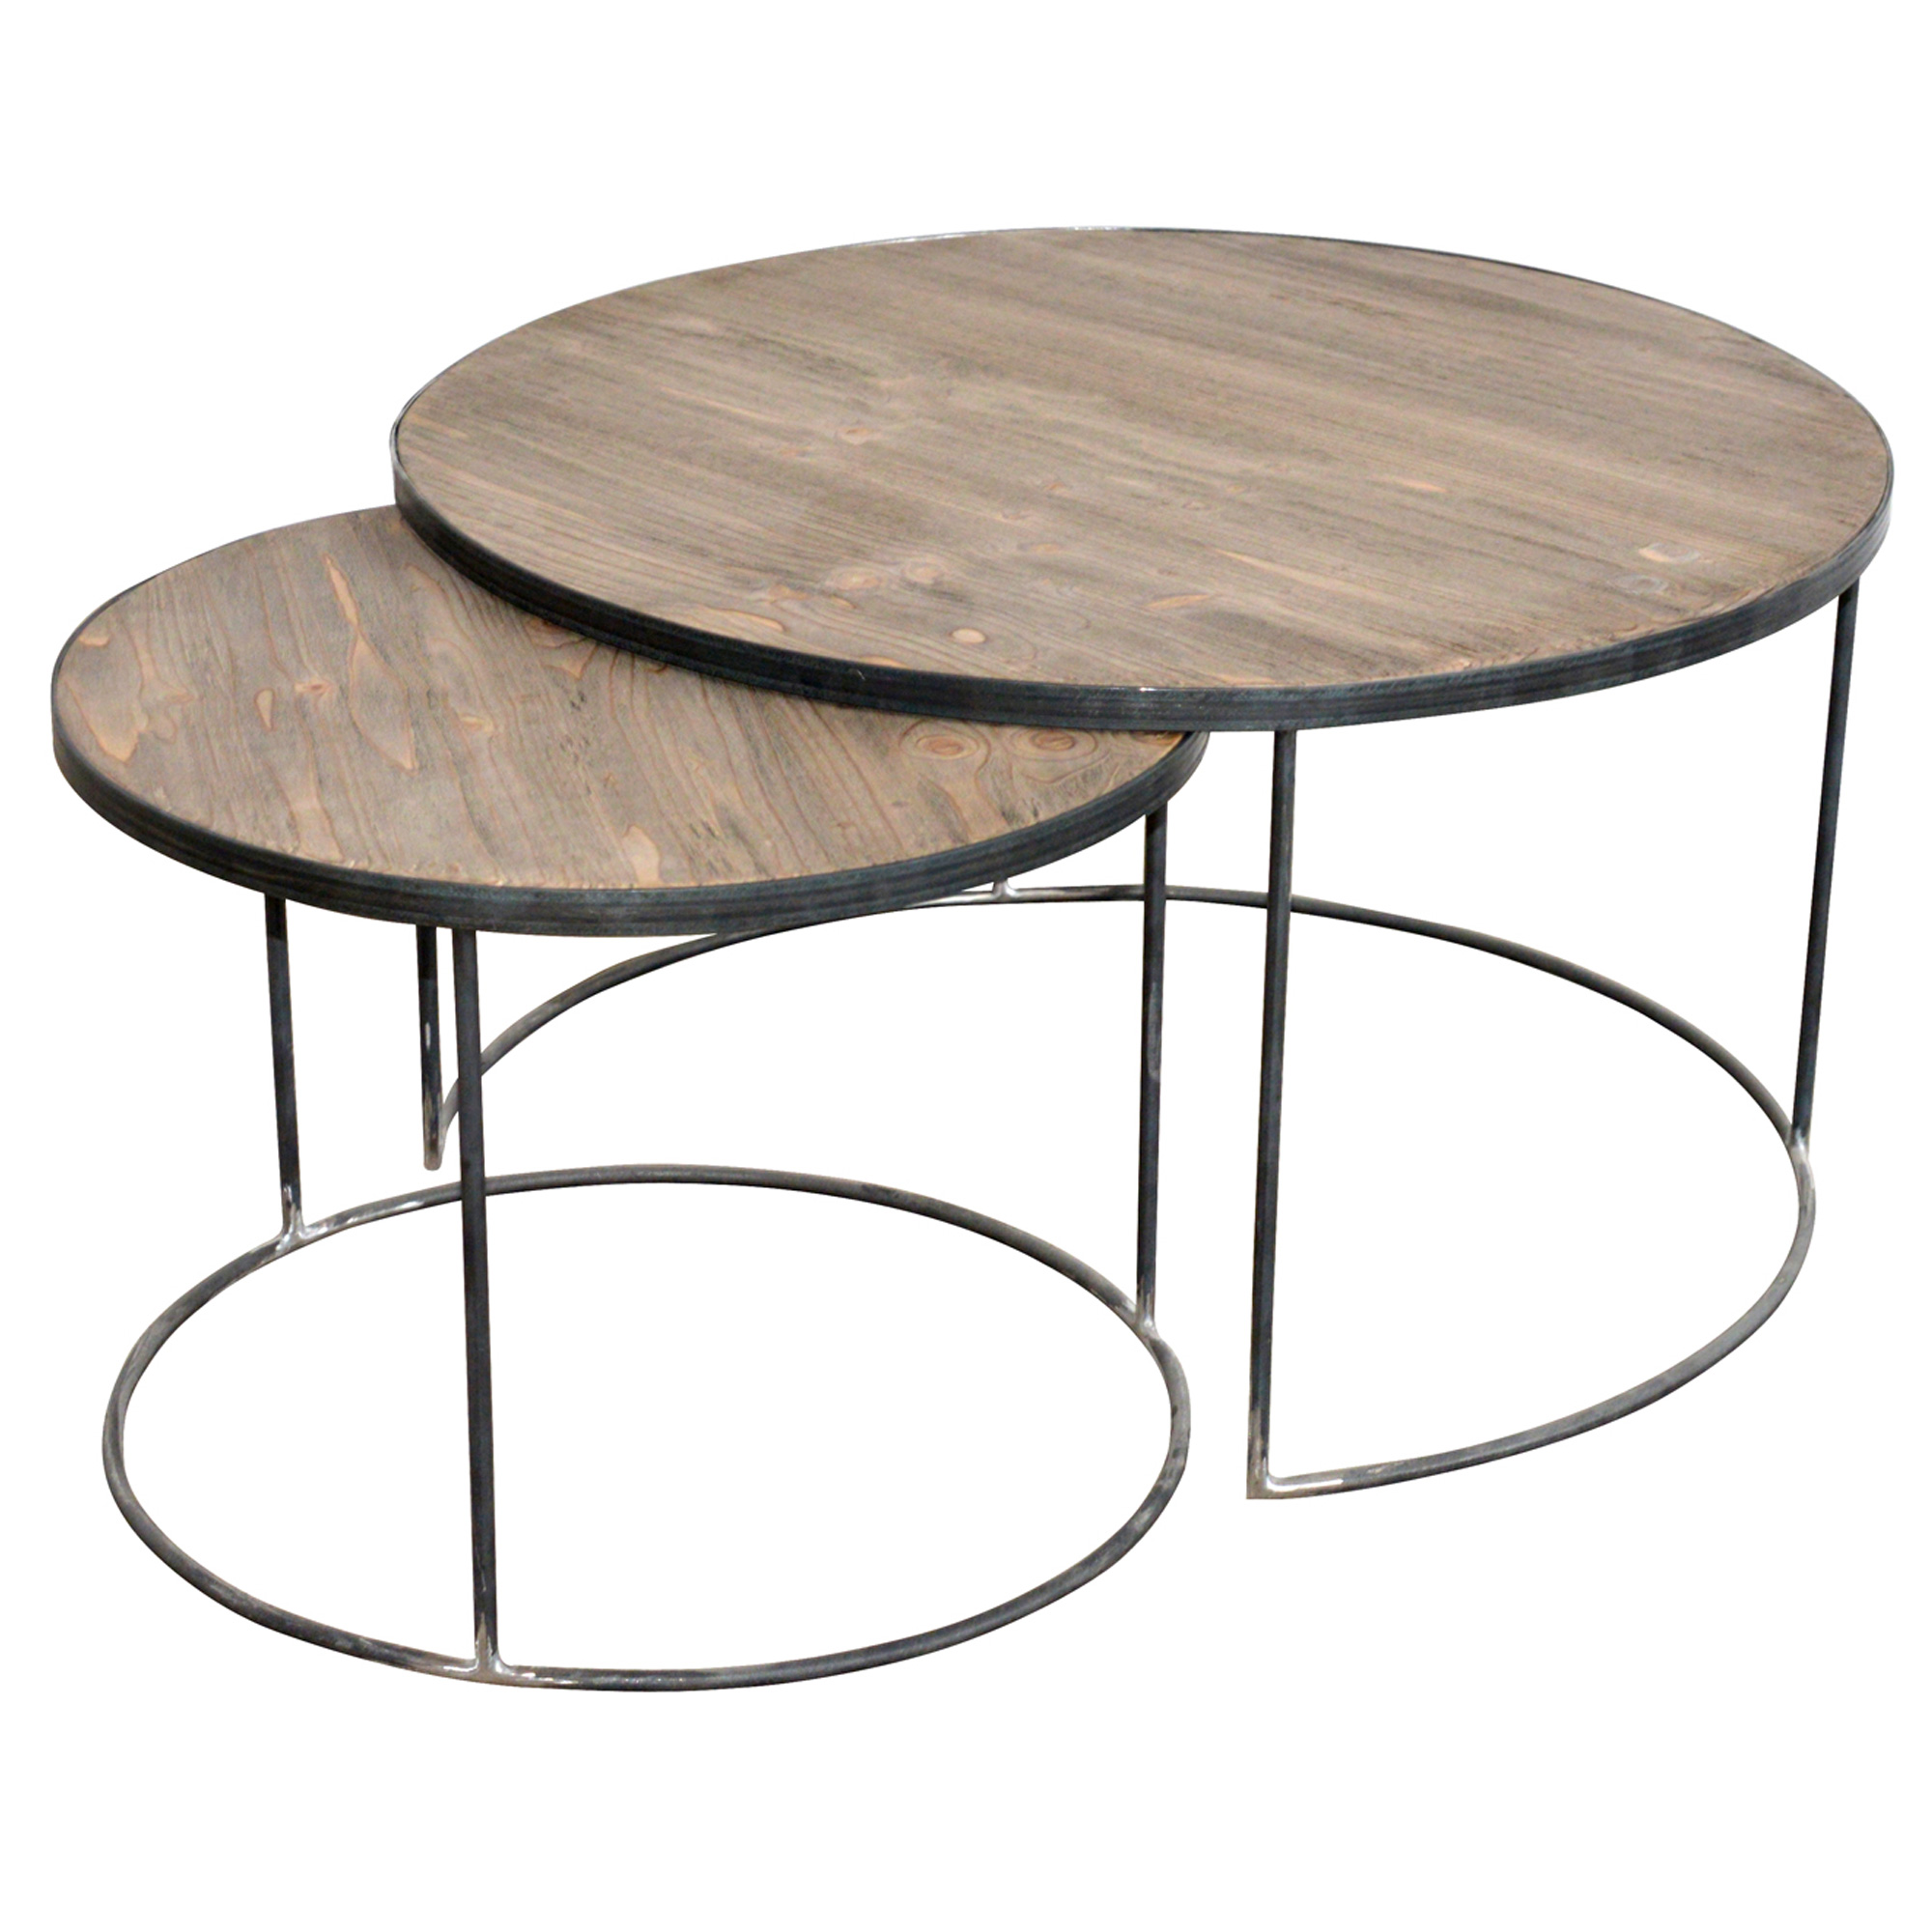 French set of two round coffee tables Round espresso coffee table